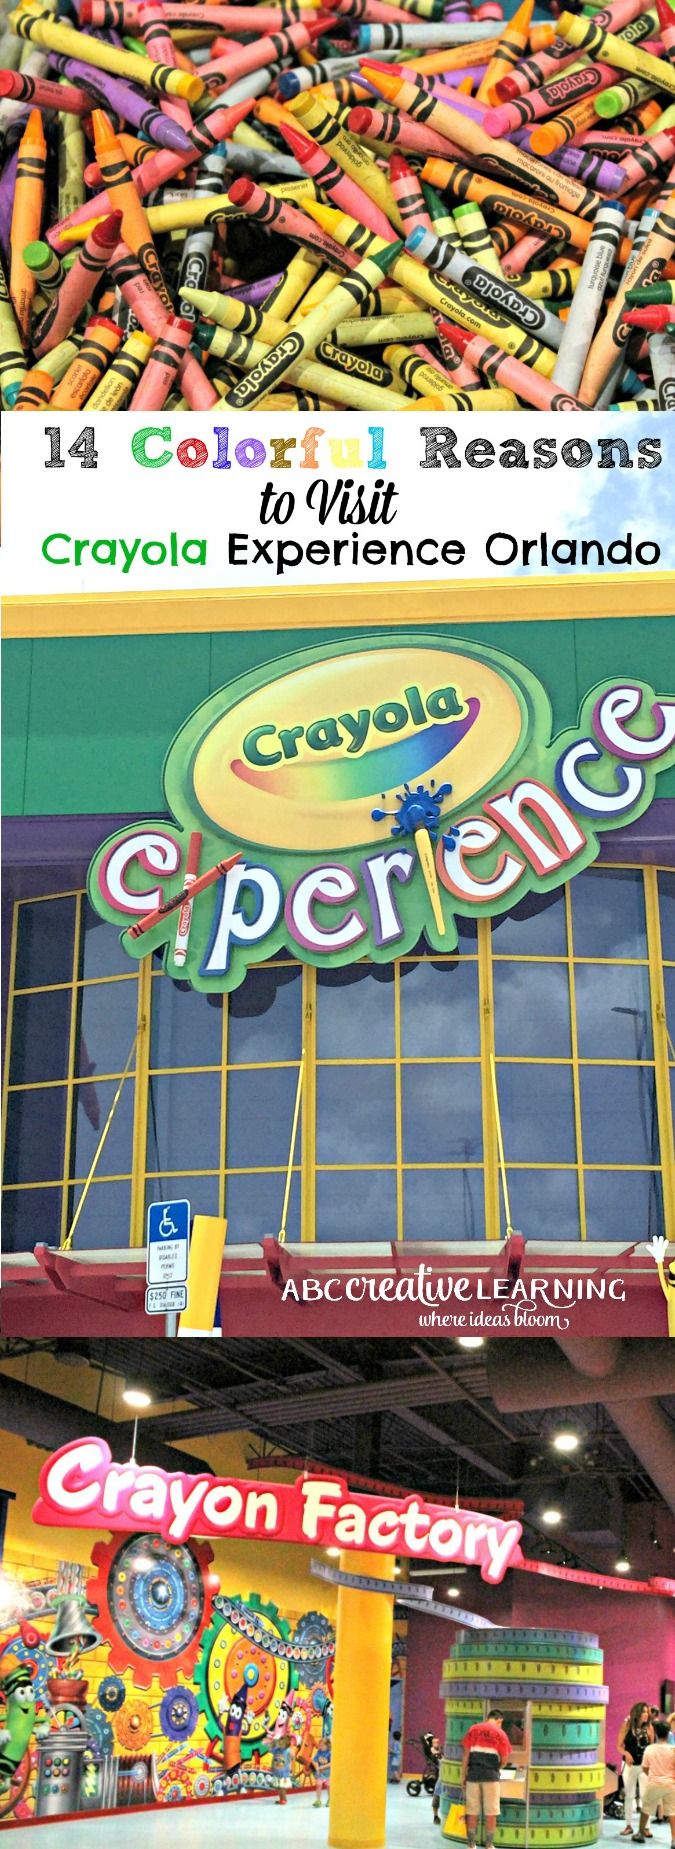 14 Colorful Reasons to Visit Crayola Experience Orlando - abccreativelearning.com